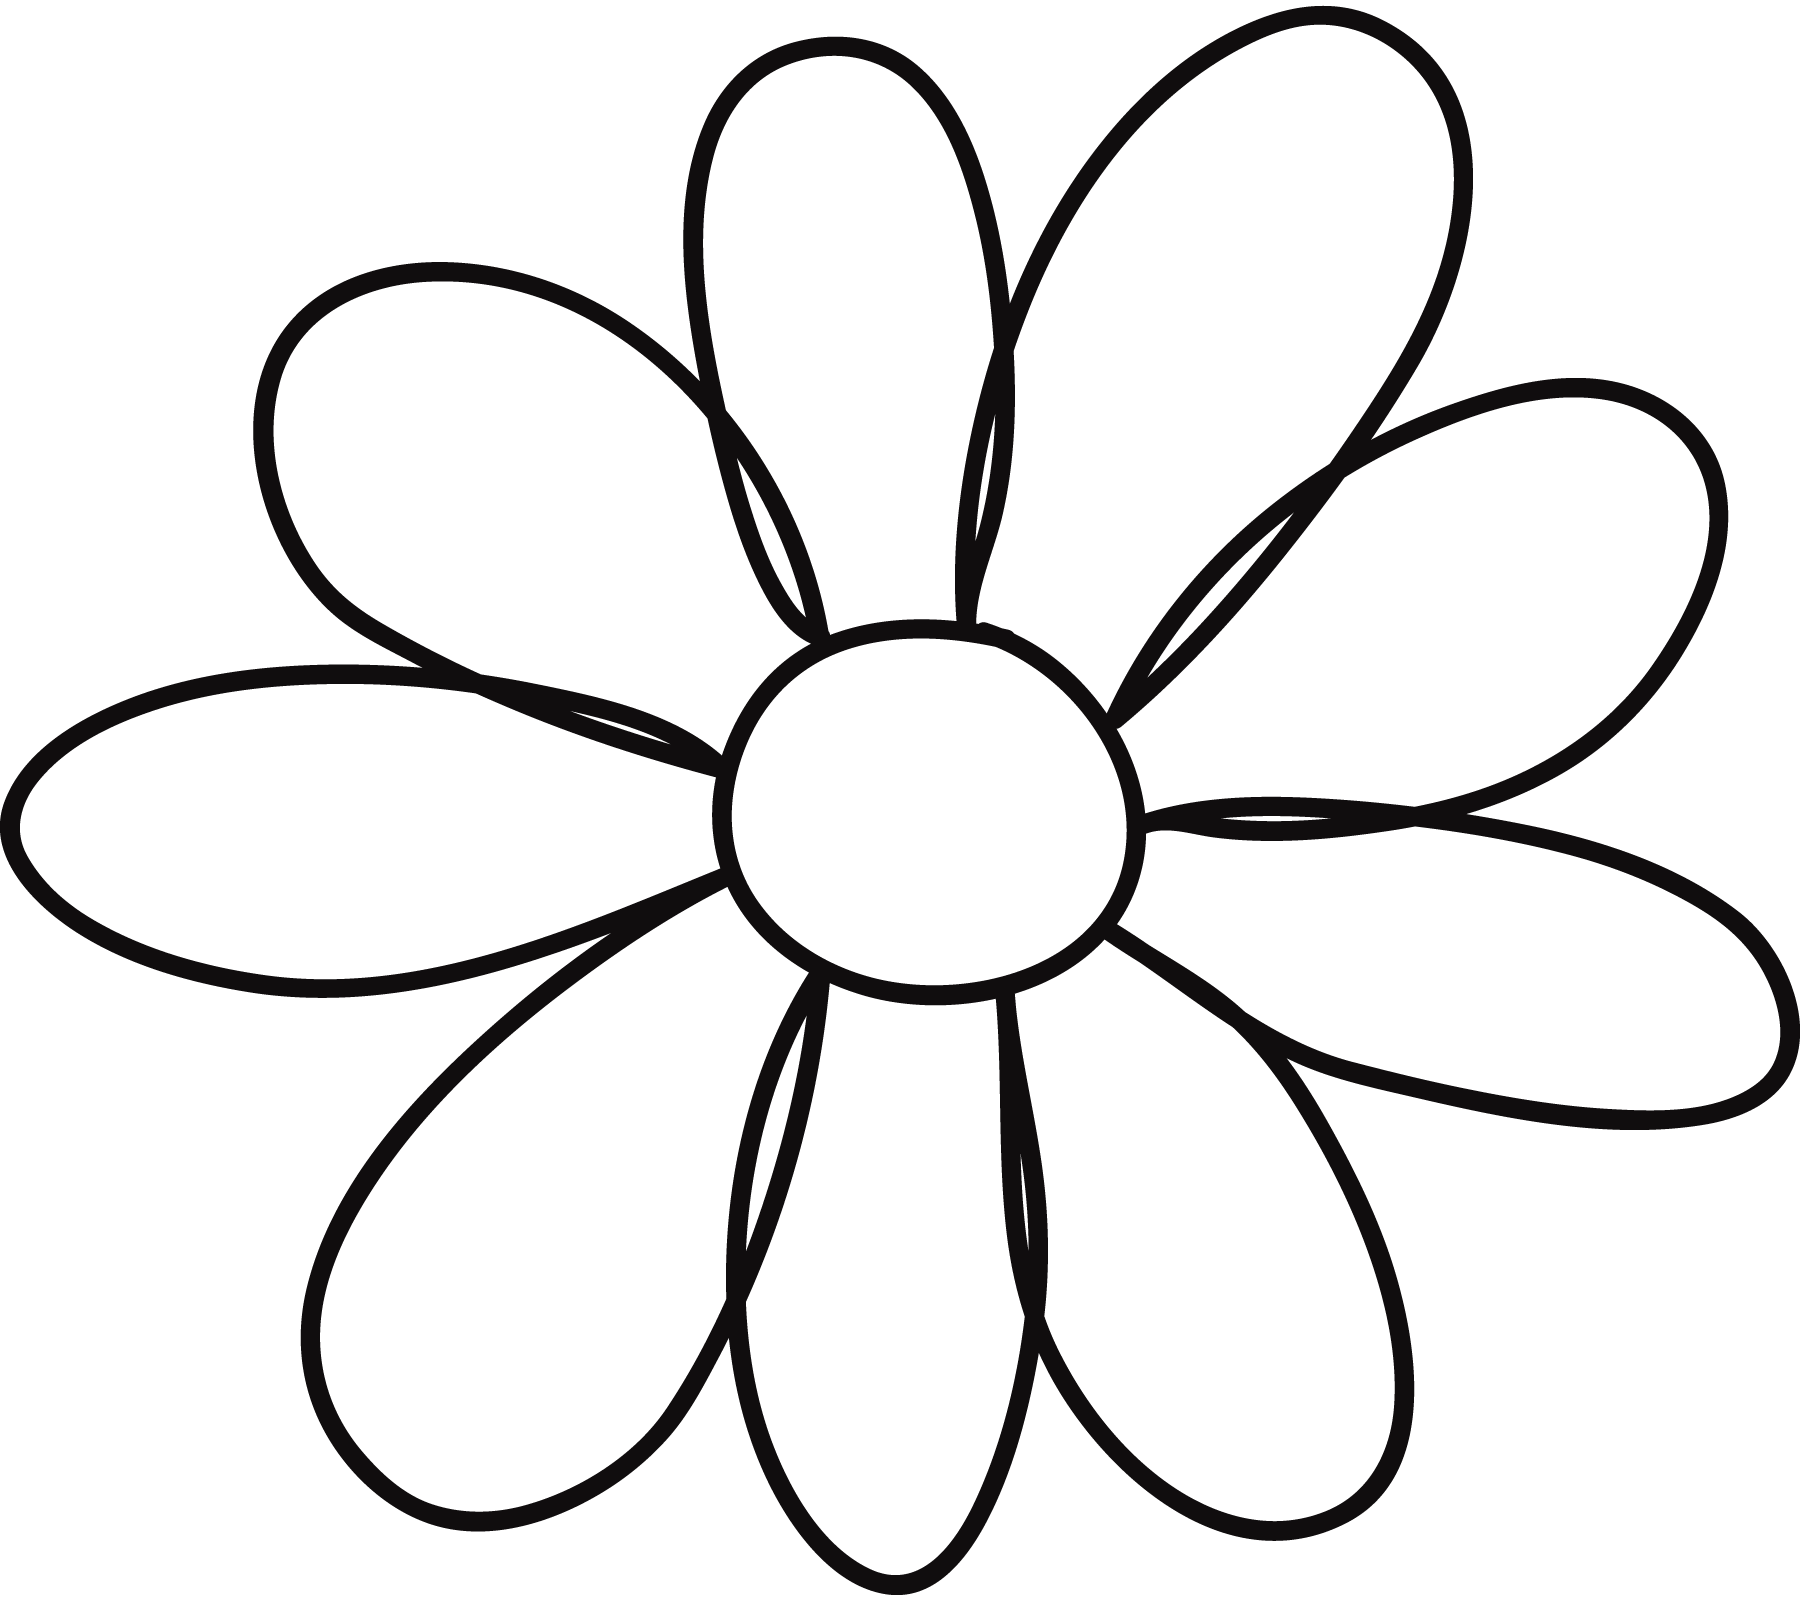 graphic regarding Daisy Template Printable known as 10 petal flower template - ClipArt Perfect - ClipArt Most straightforward